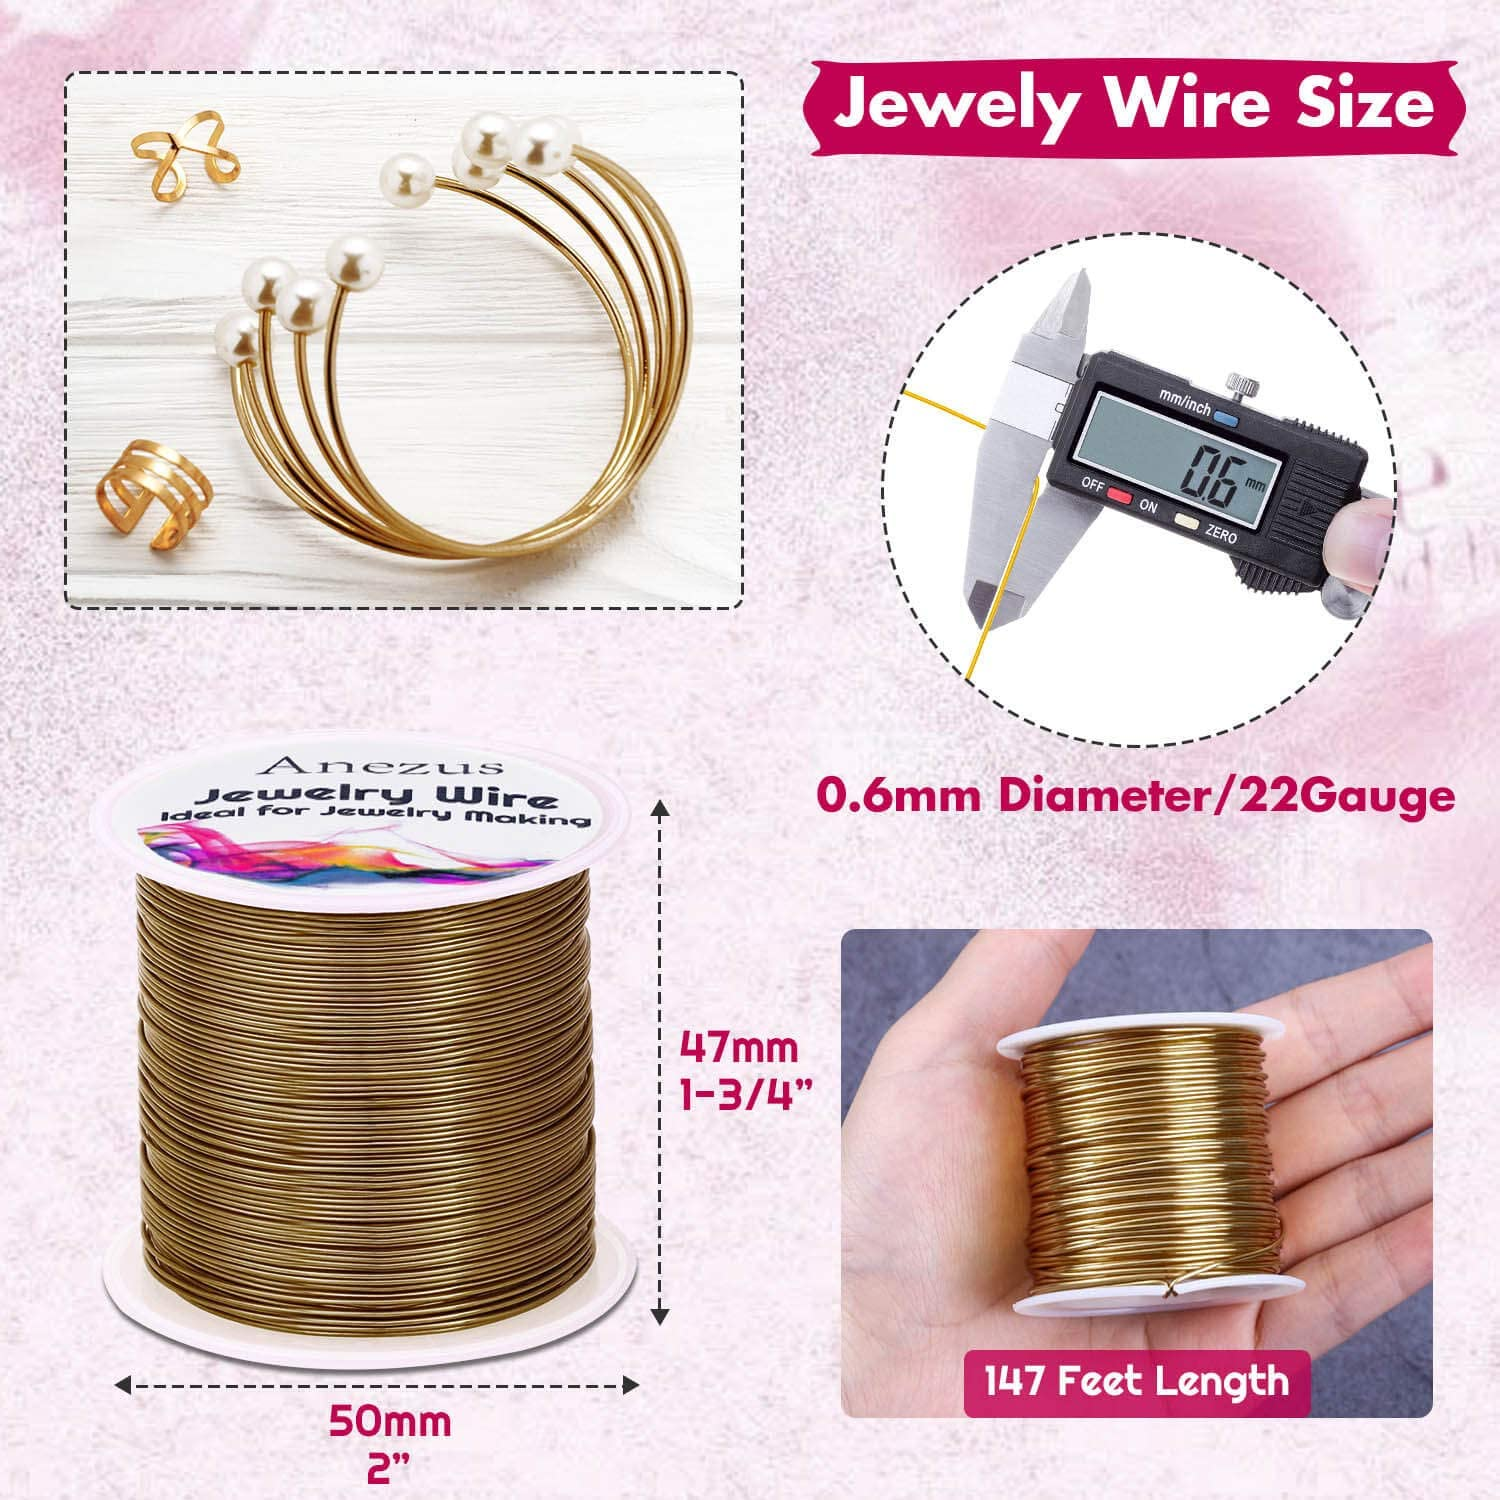 Copper Anezus Craft Wire Tarnish Resistant Copper Beading Wire for Jewelry Making Supplies and Crafting 22 Gauge Jewelry Wire